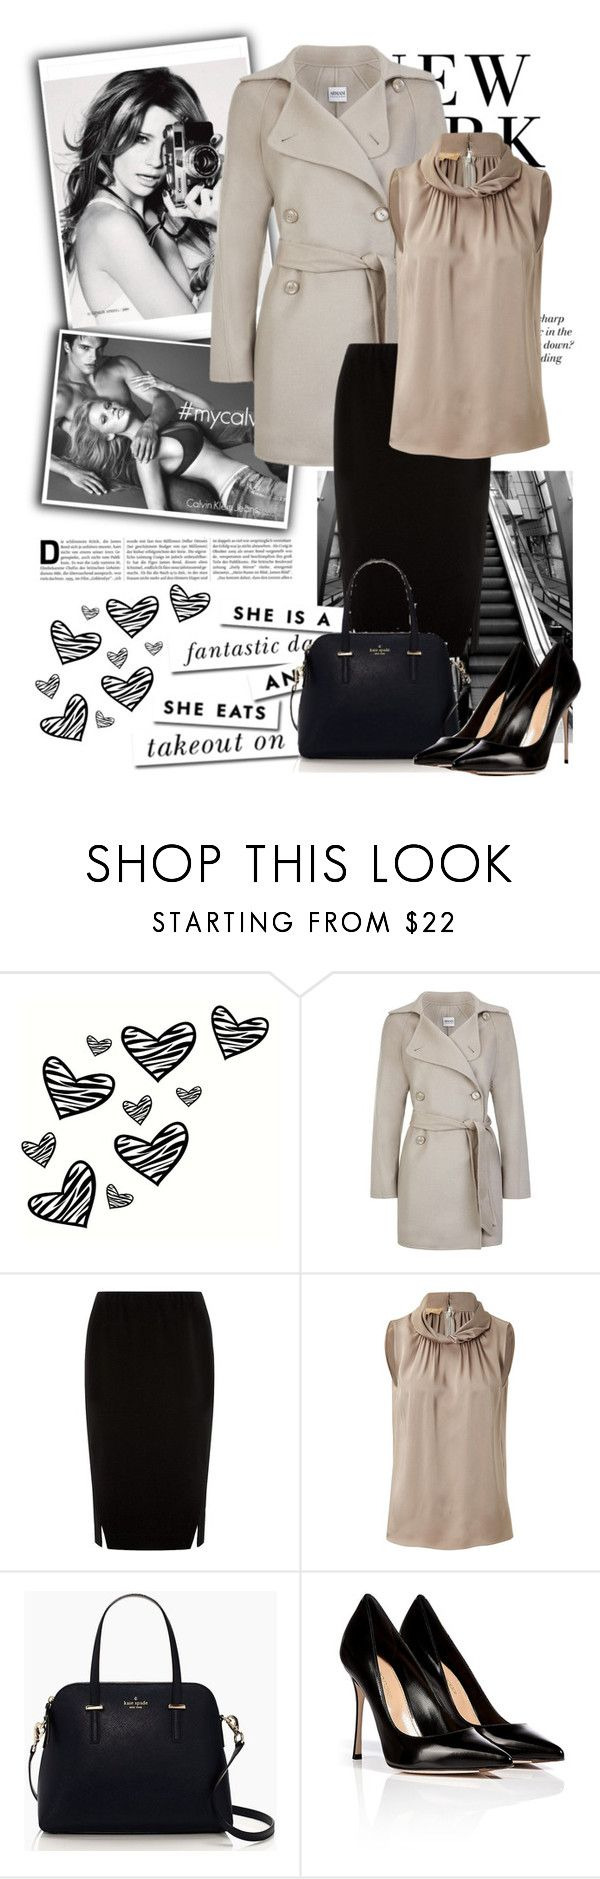 """""""Untitled #222"""" by erivegh ❤ liked on Polyvore featuring Calvin Klein Jeans, Mischa Barton Handbags, H&M, WALL, Armani Collezioni, Donna Karan, Michael Kors, Kate Spade and Sergio Rossi"""